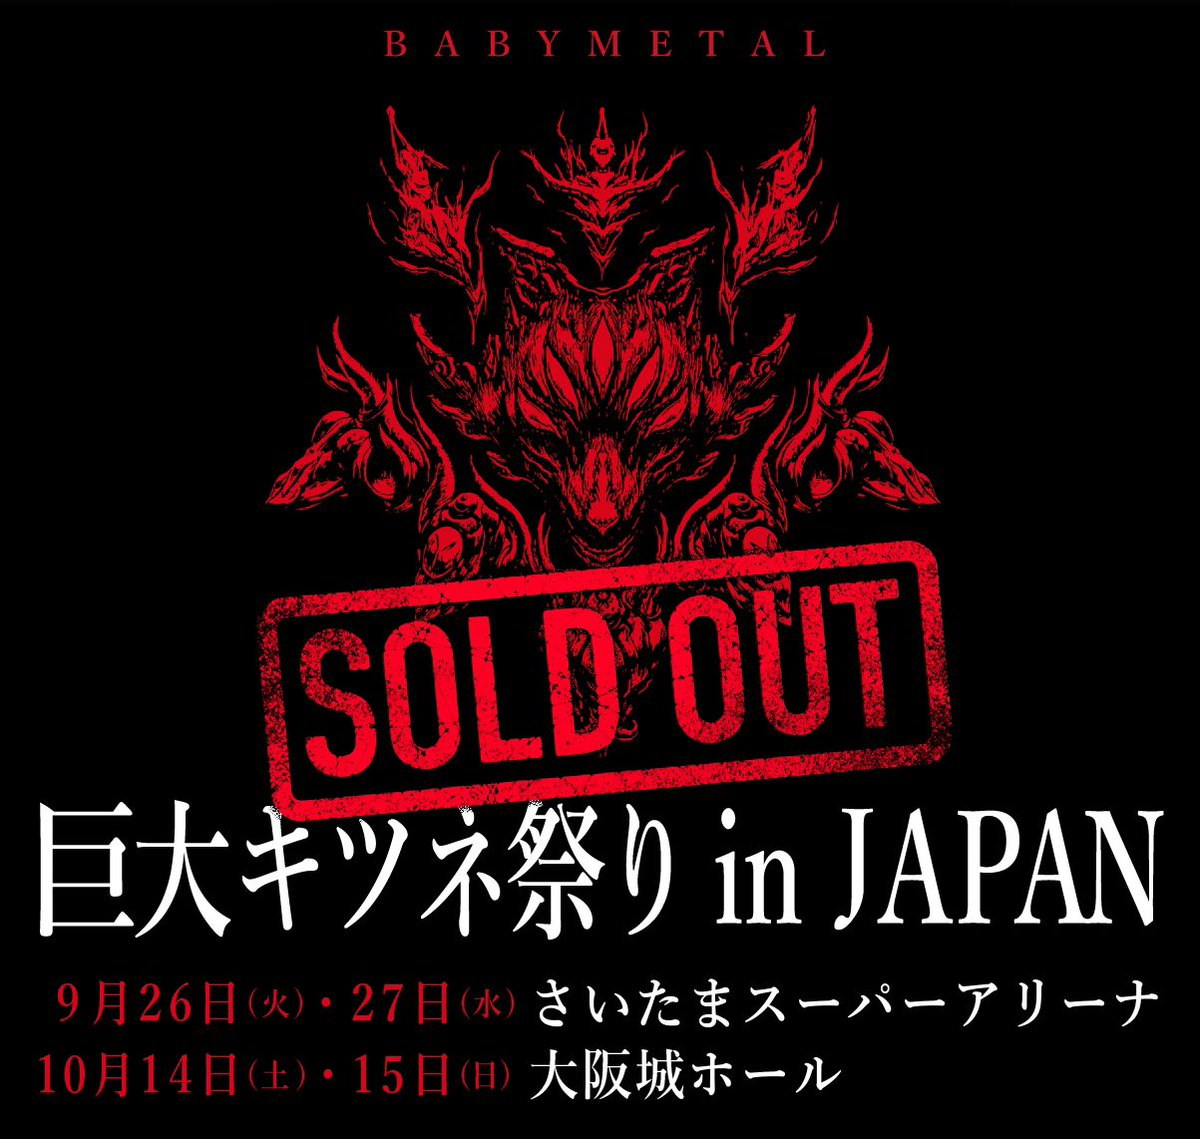 Thank you SOLD OUT!! #巨大キツネ祭り#Japan #BABYMETAL #summersonic #サマソニ https;//t.co/56cBSgzdPd